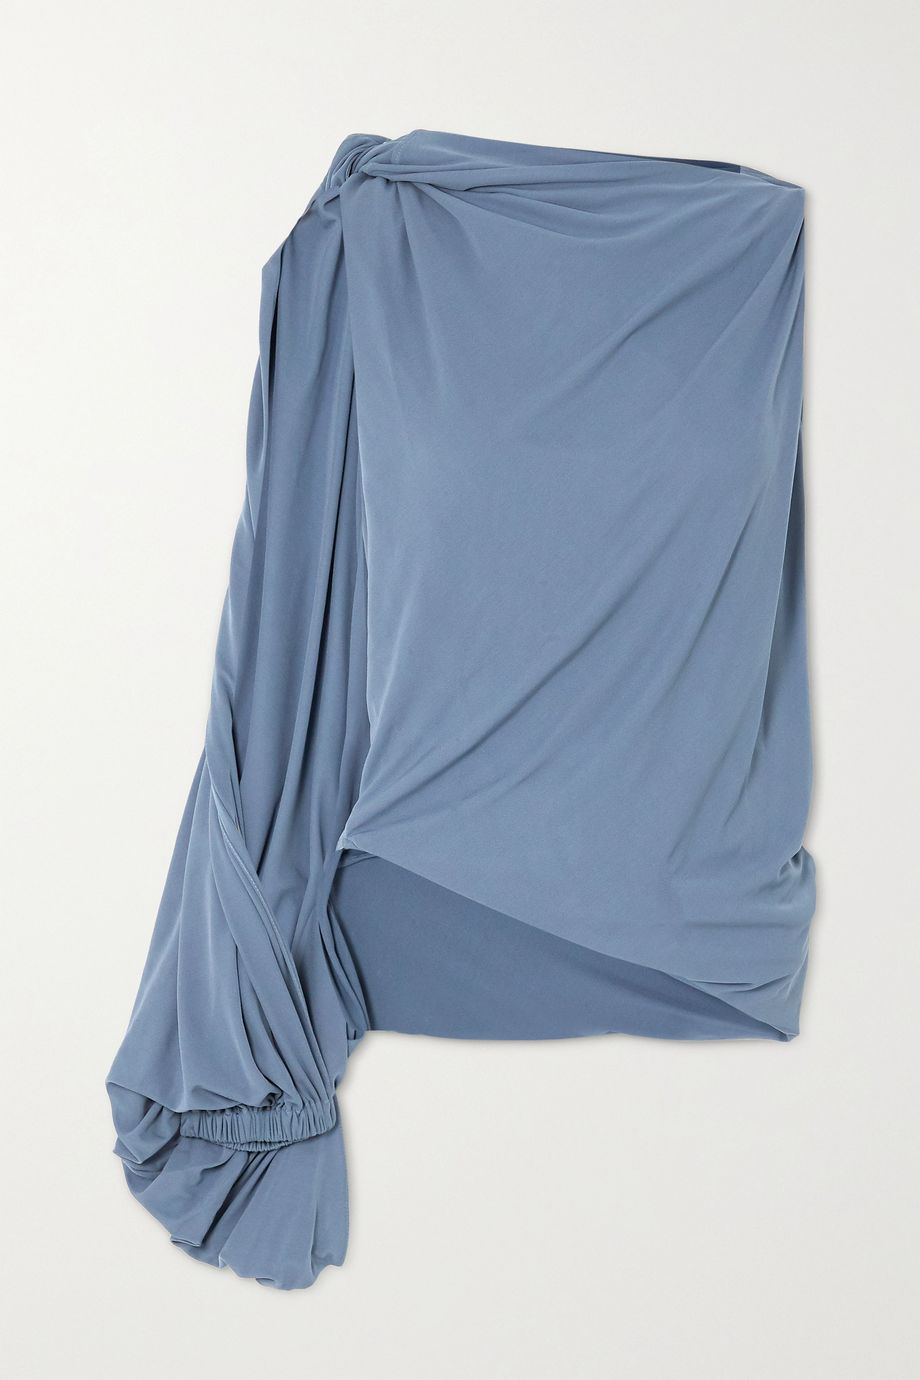 JW Anderson One-sleeve draped crepe top